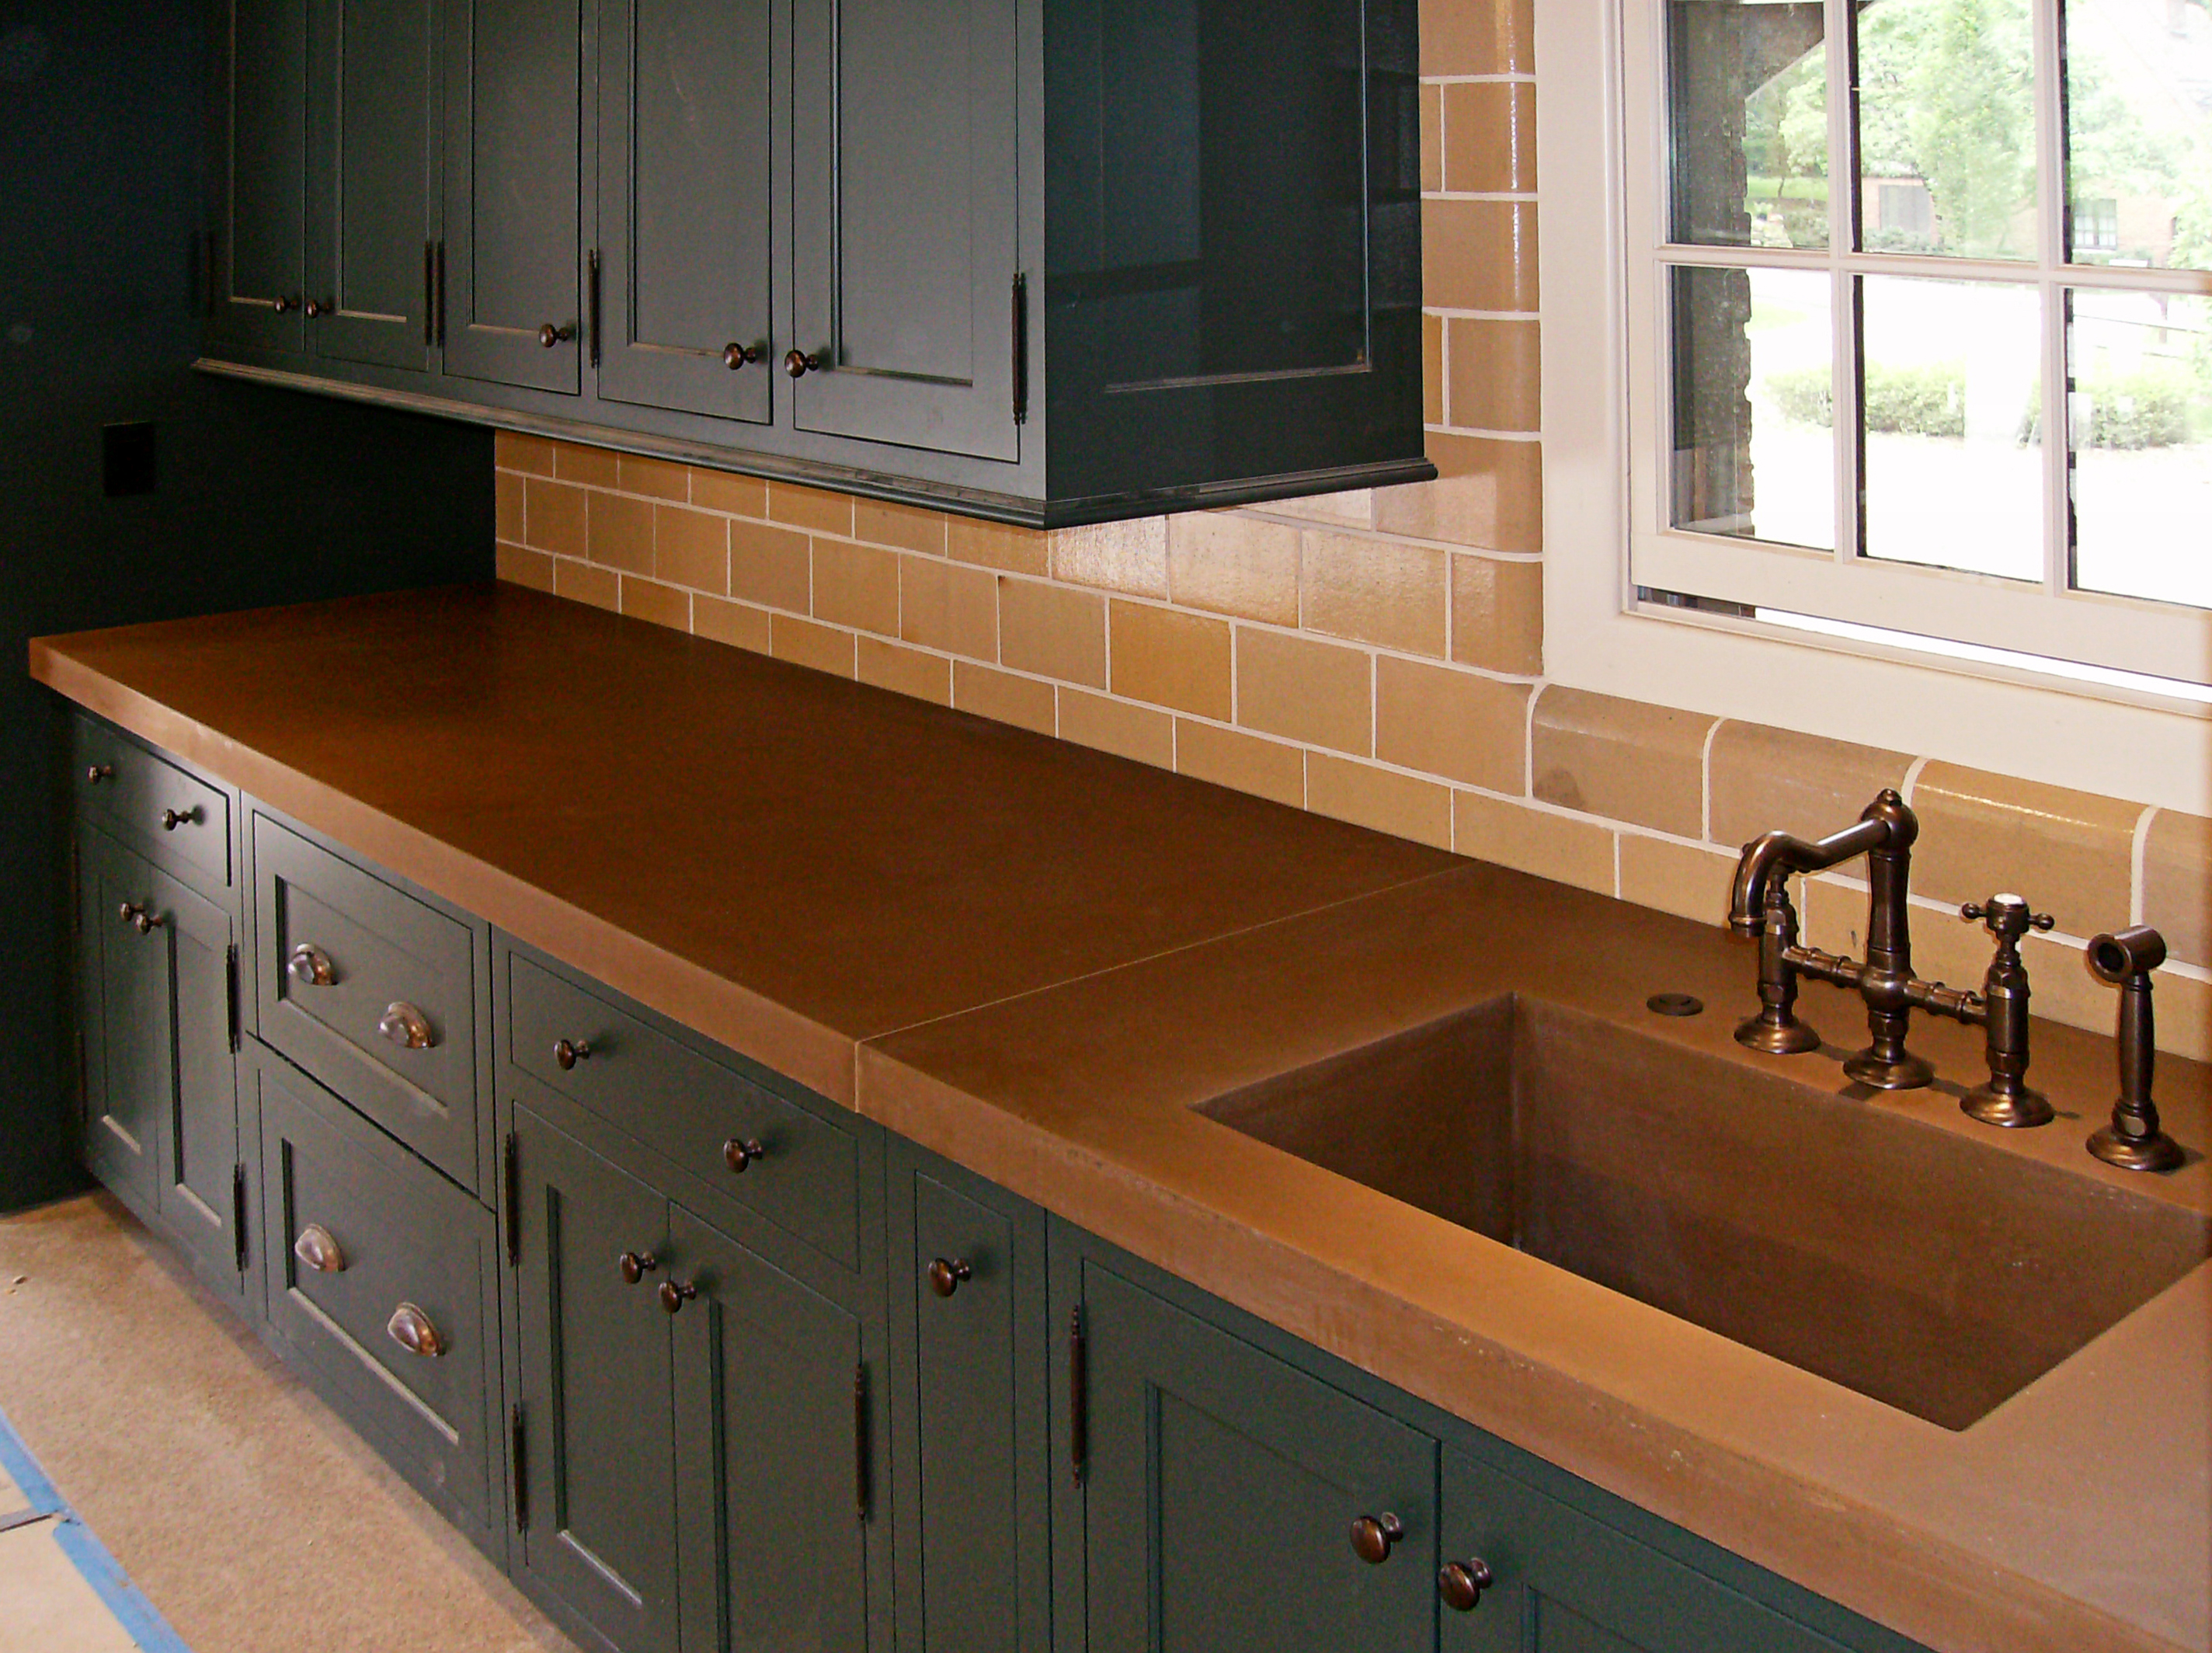 Integrated Concrete Sink